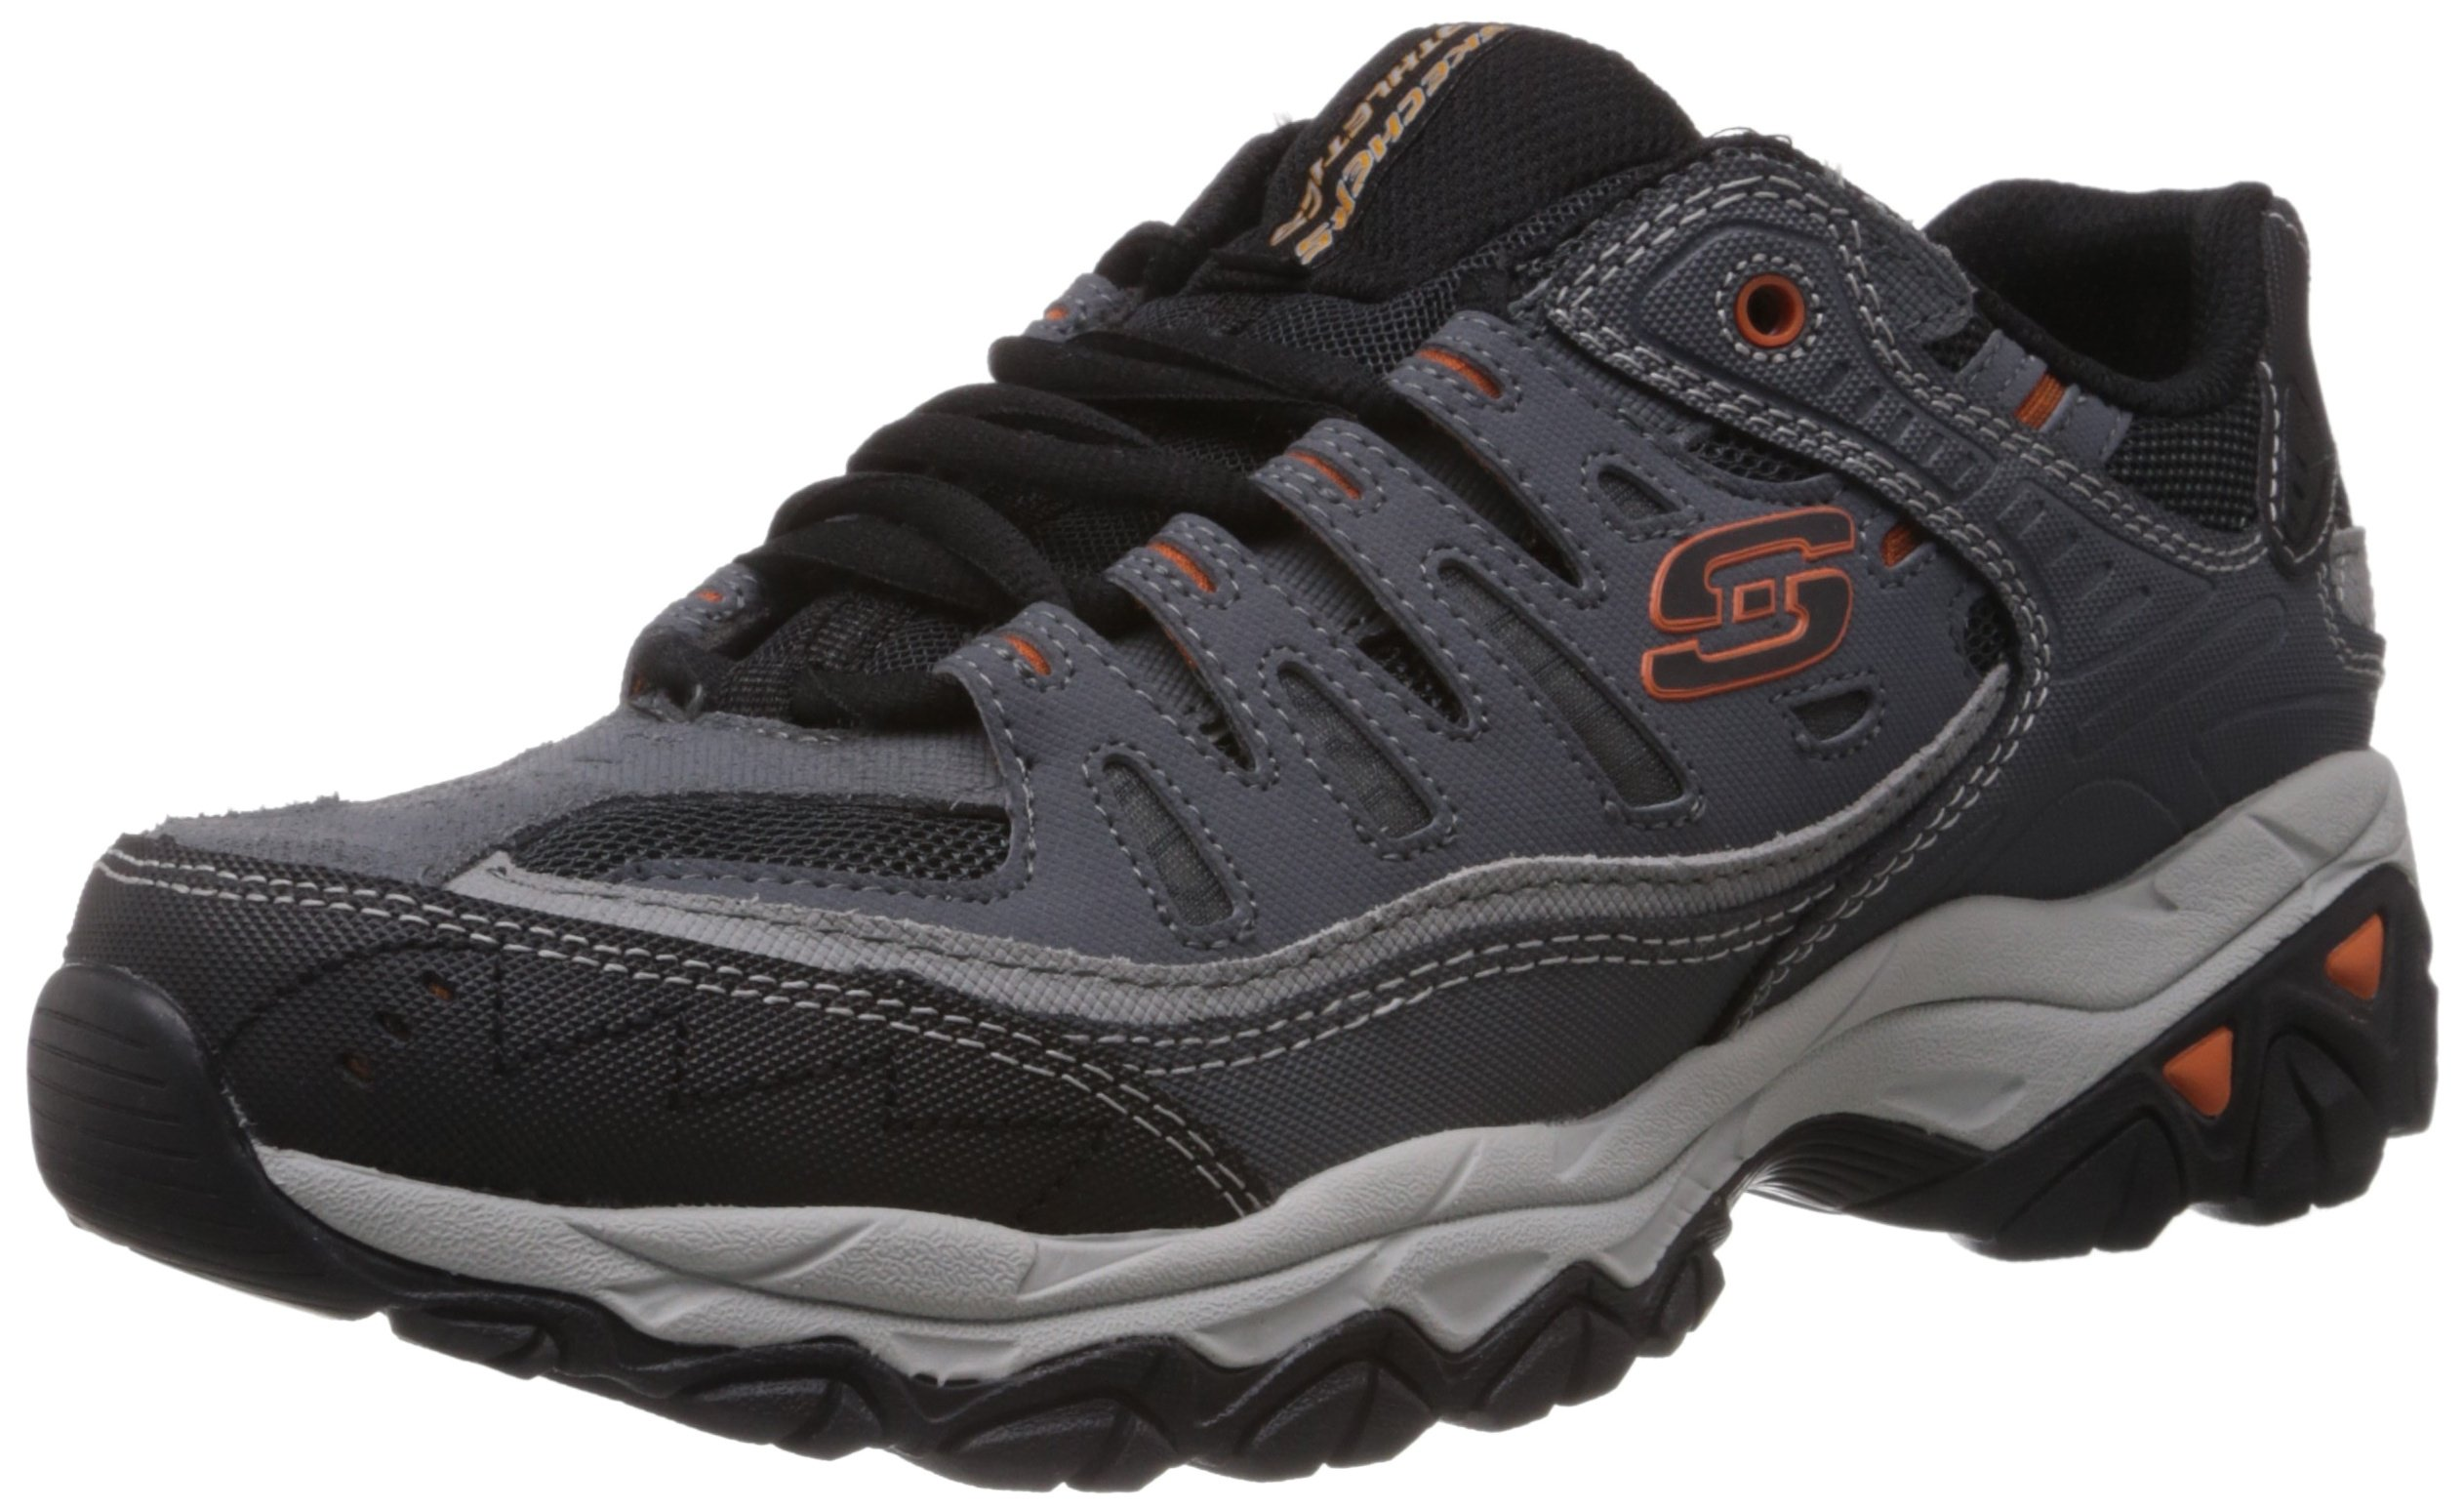 1a7b12a60e65d Galleon - Skechers Men s AFTER BURN M.FIT Memory Foam Lace-Up ...